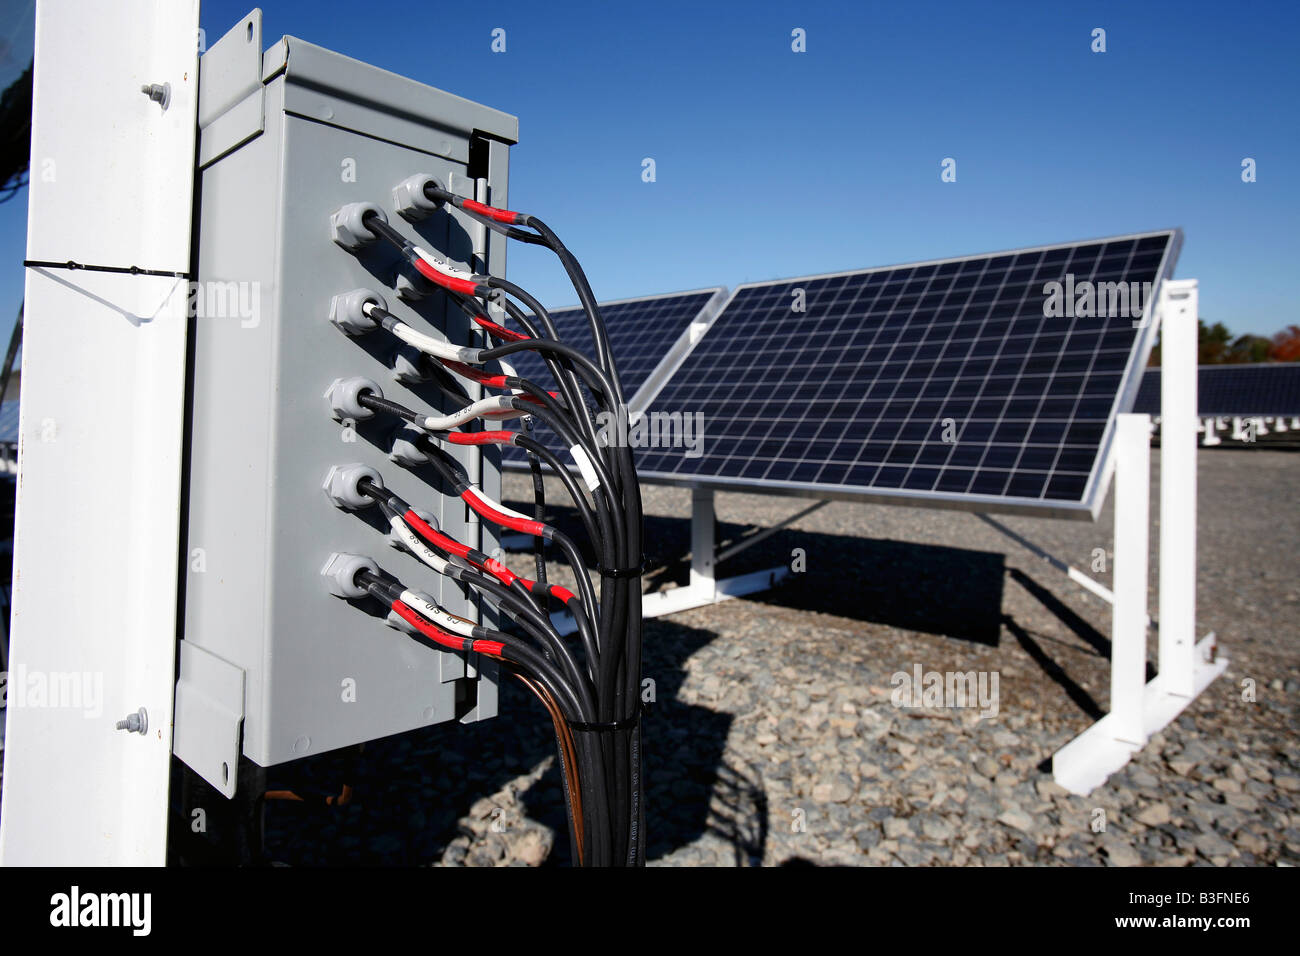 Electrical Wires Enter A Junction Box On The Site Of Solar Powered Power Wiring Electricity Generating Array In Brockton Massachusetts